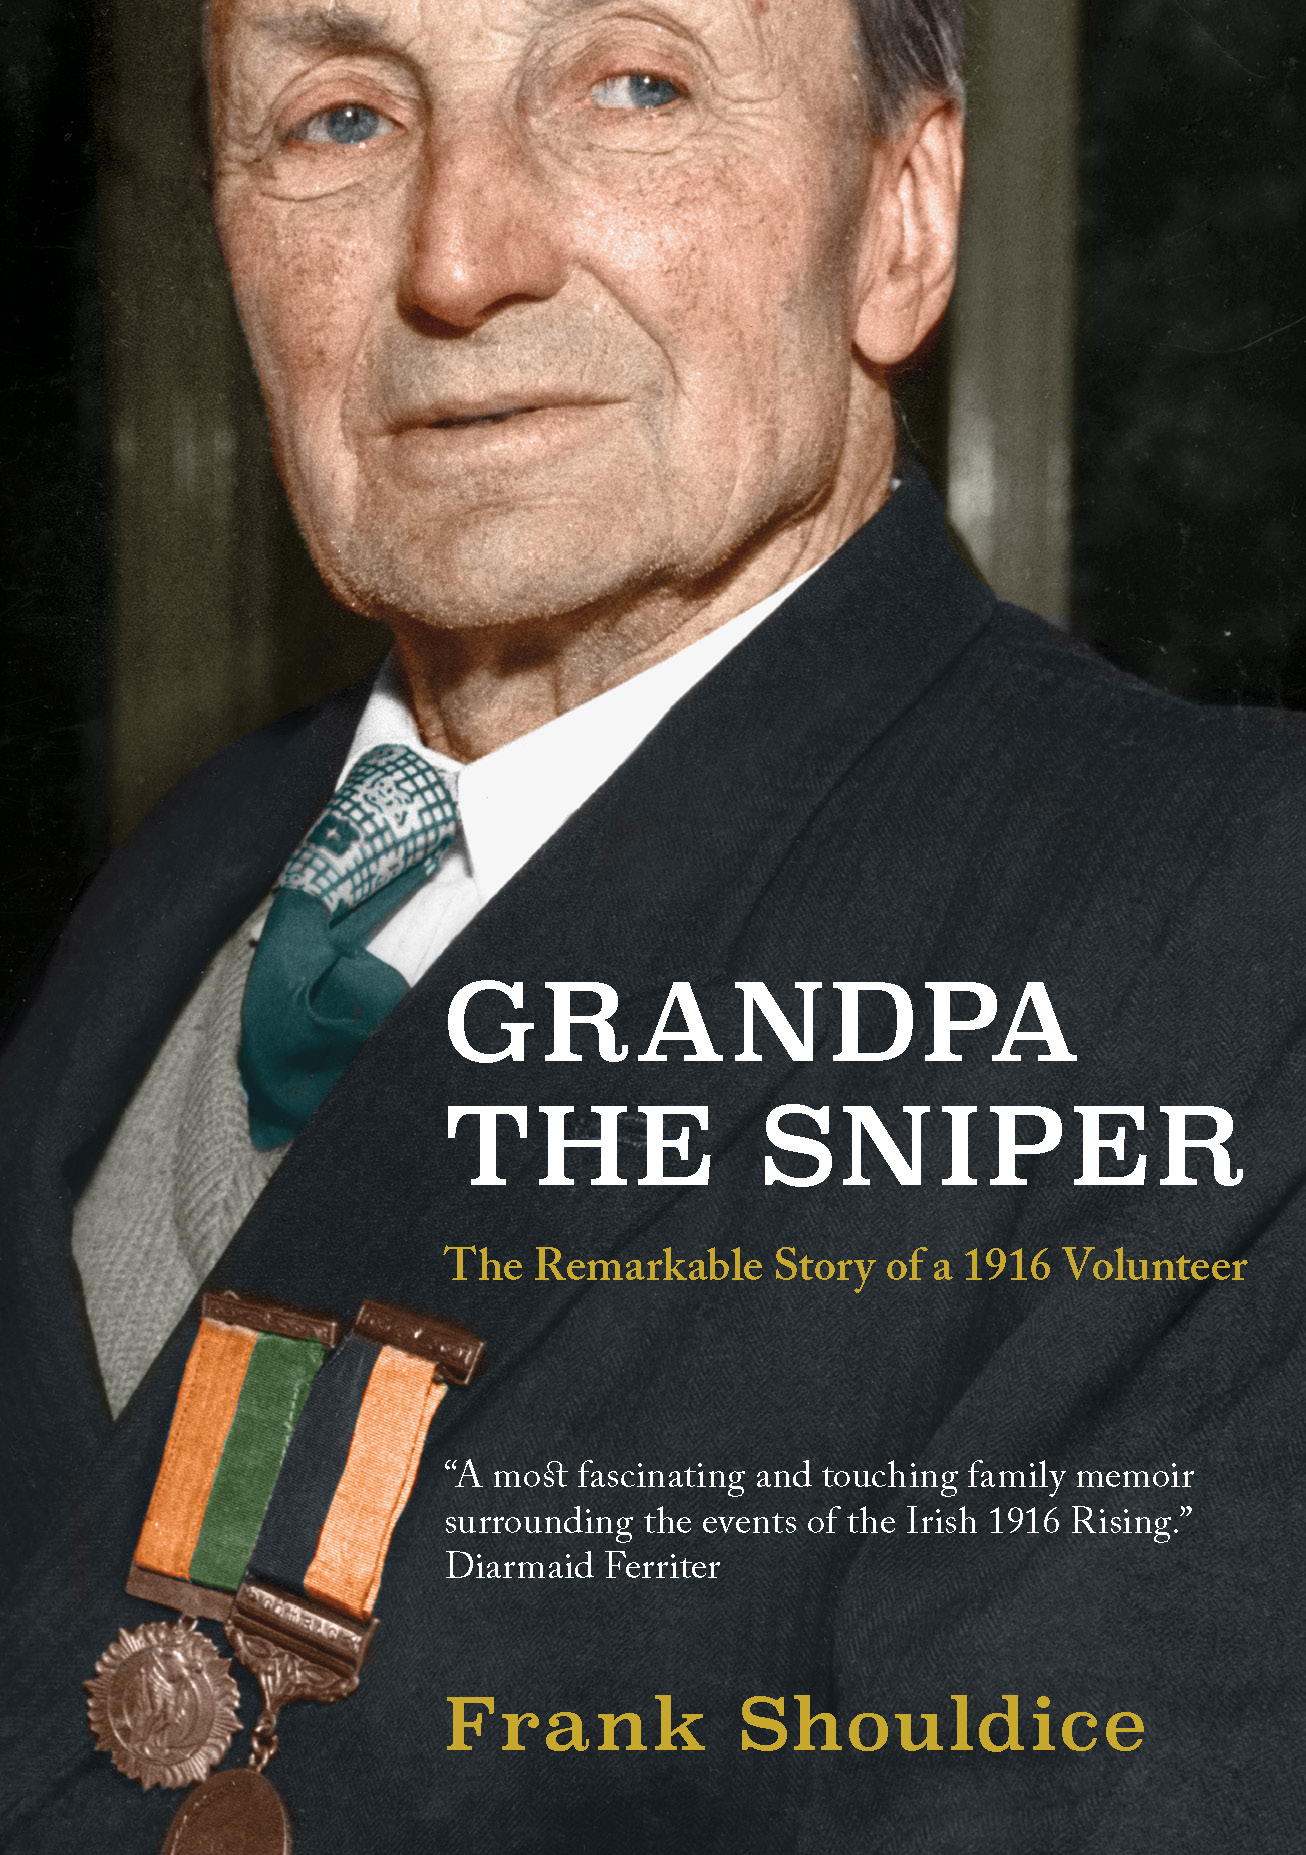 Grandpa The Sniper, published by  The Liffey Press,  is available in the  U.S. through  DuFour Editions at  irishbooks.us/rising1916,  priced at $28.